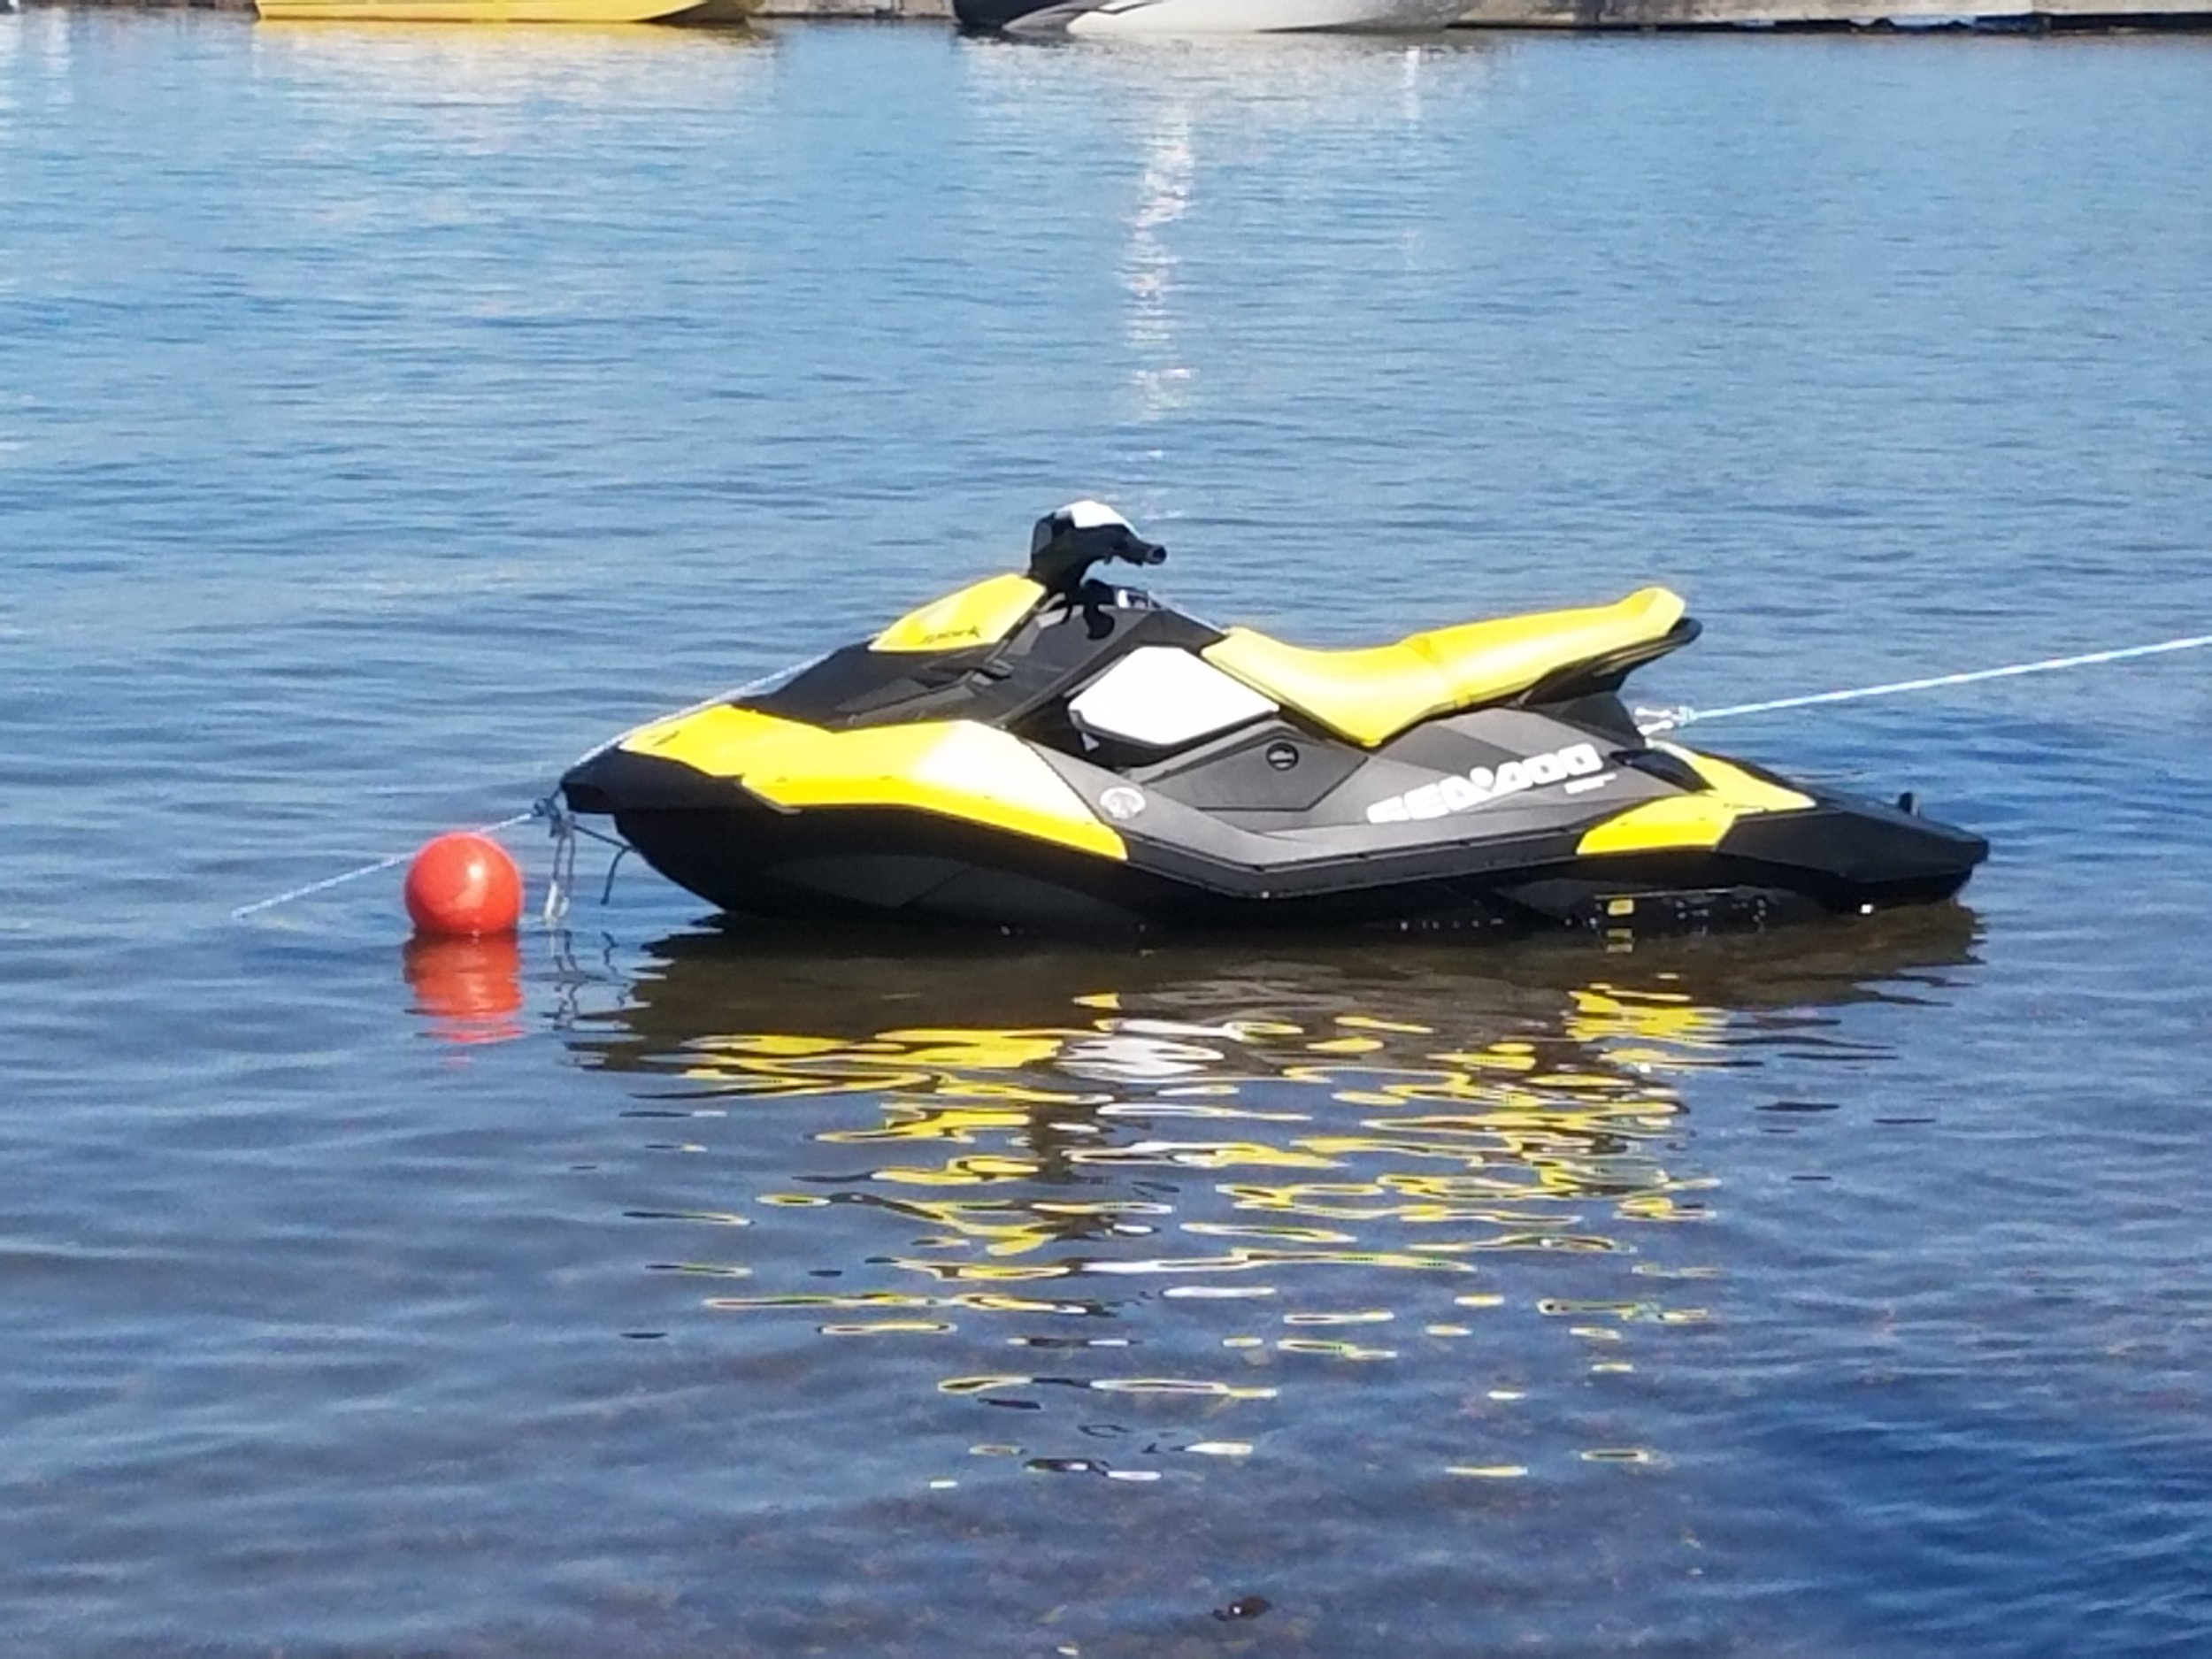 The Yellow Seadoo Spark